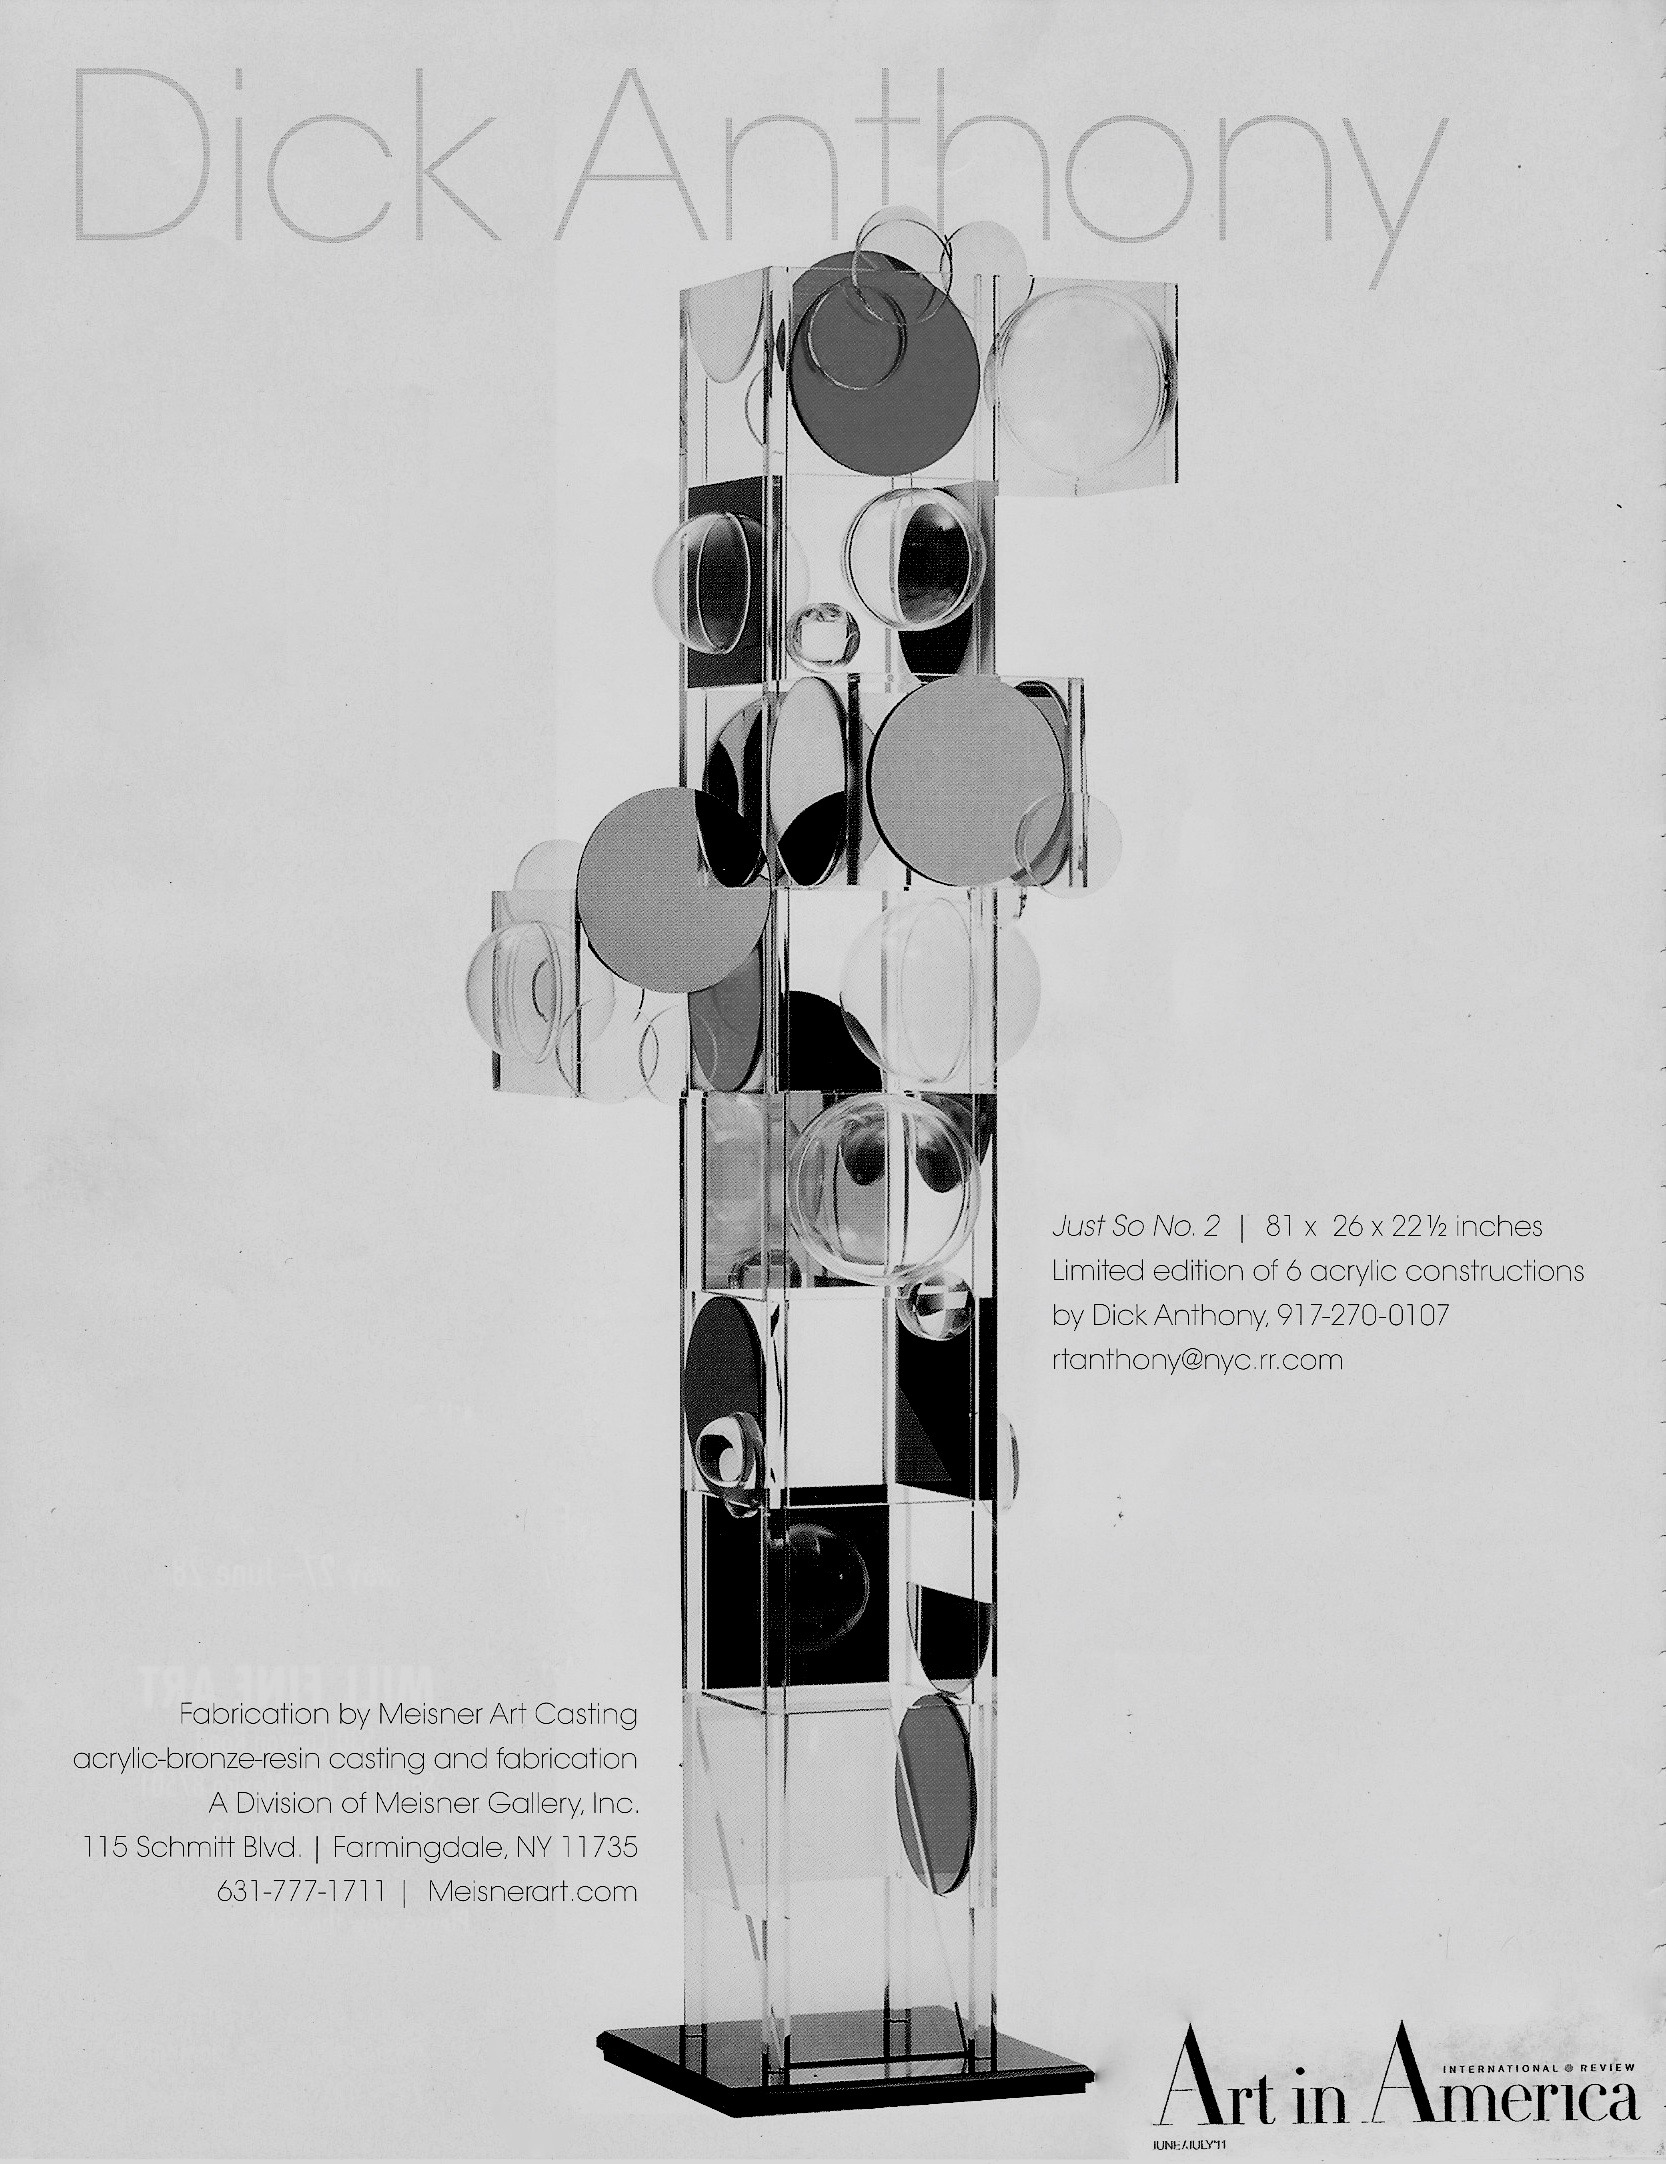 <em>Art in America</em> ad by The Meisner Gallery of the 6.75-foot sculpture shown in the Cosmic Order Gallery